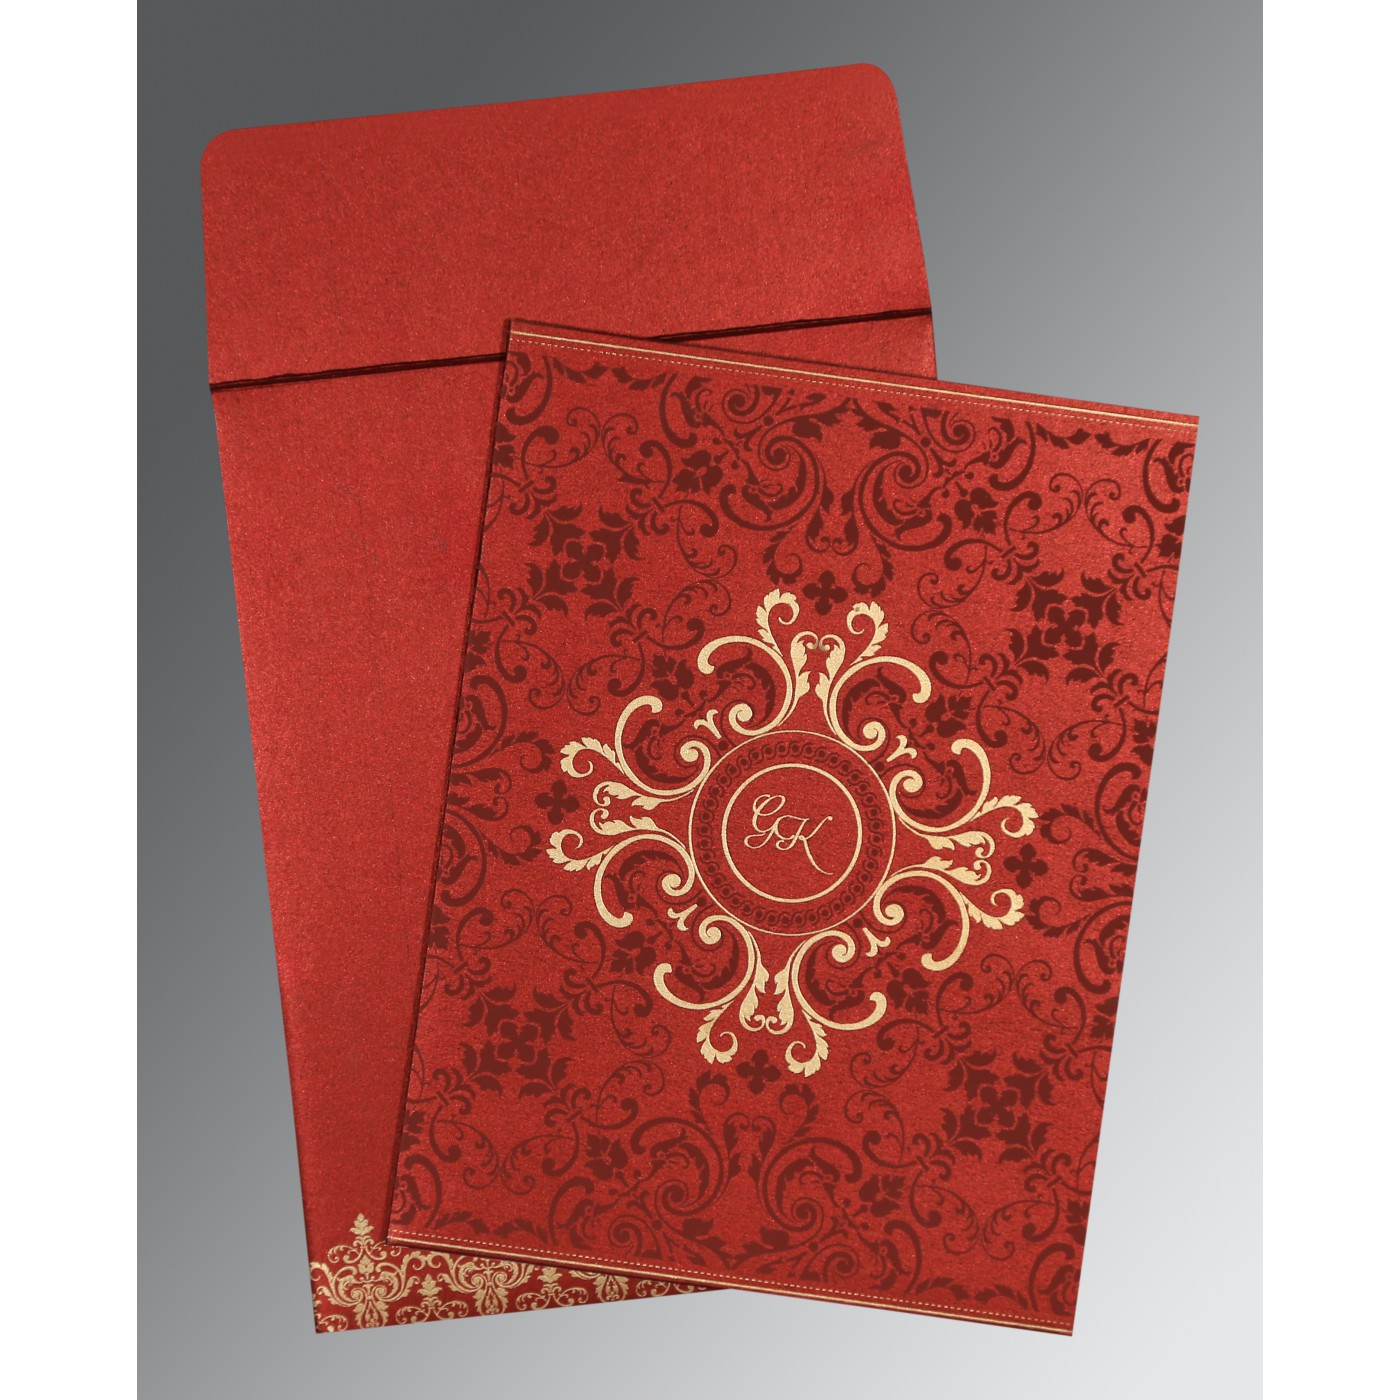 WINE RED SHIMMERY SCREEN PRINTED WEDDING CARD : D-8244E - 123WeddingCards